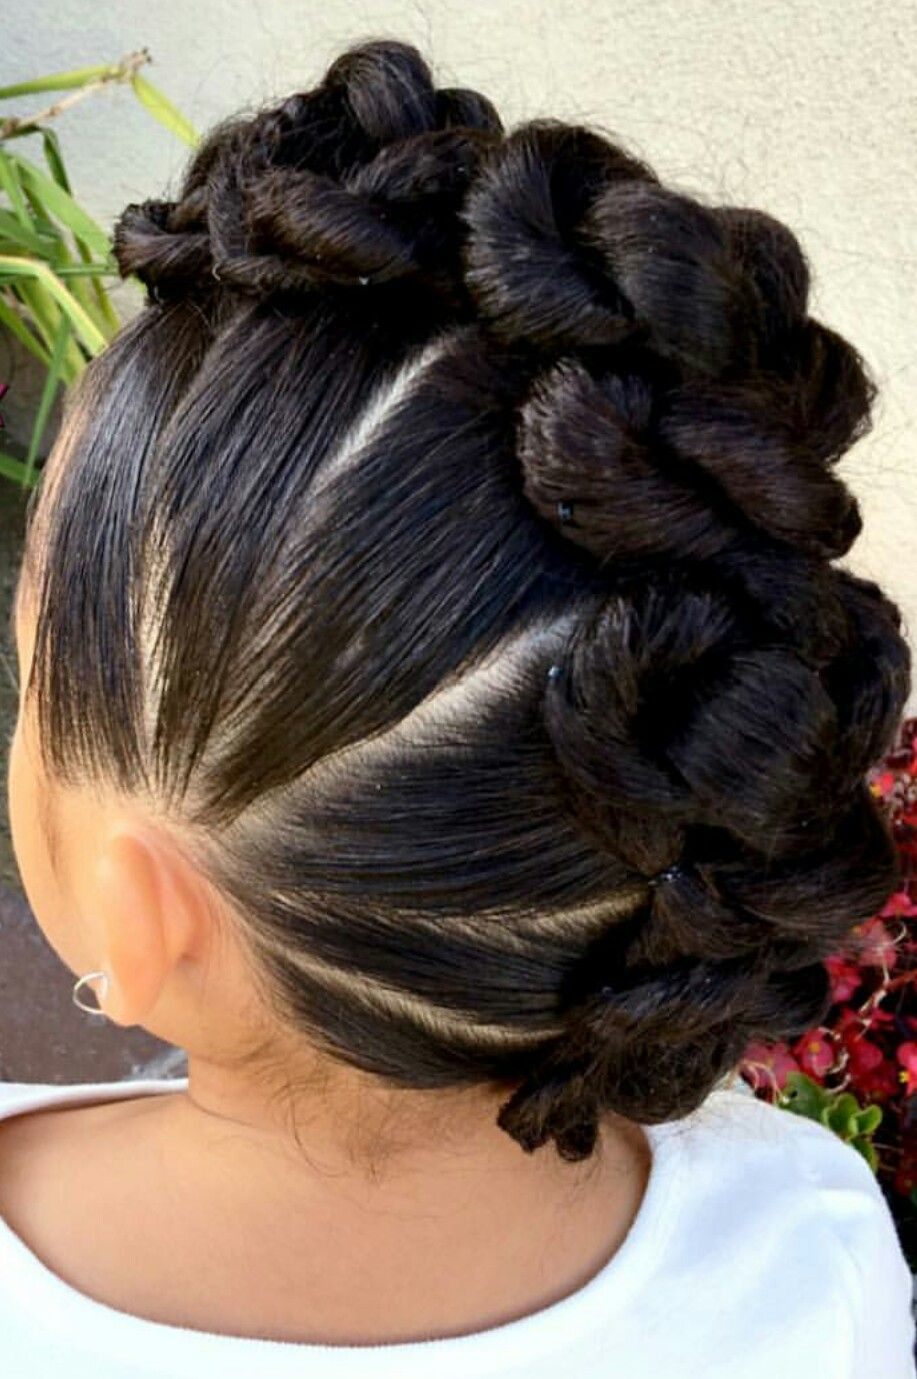 Mohawk Knot Updo Hairstyle Inspiration Idea Miristhings